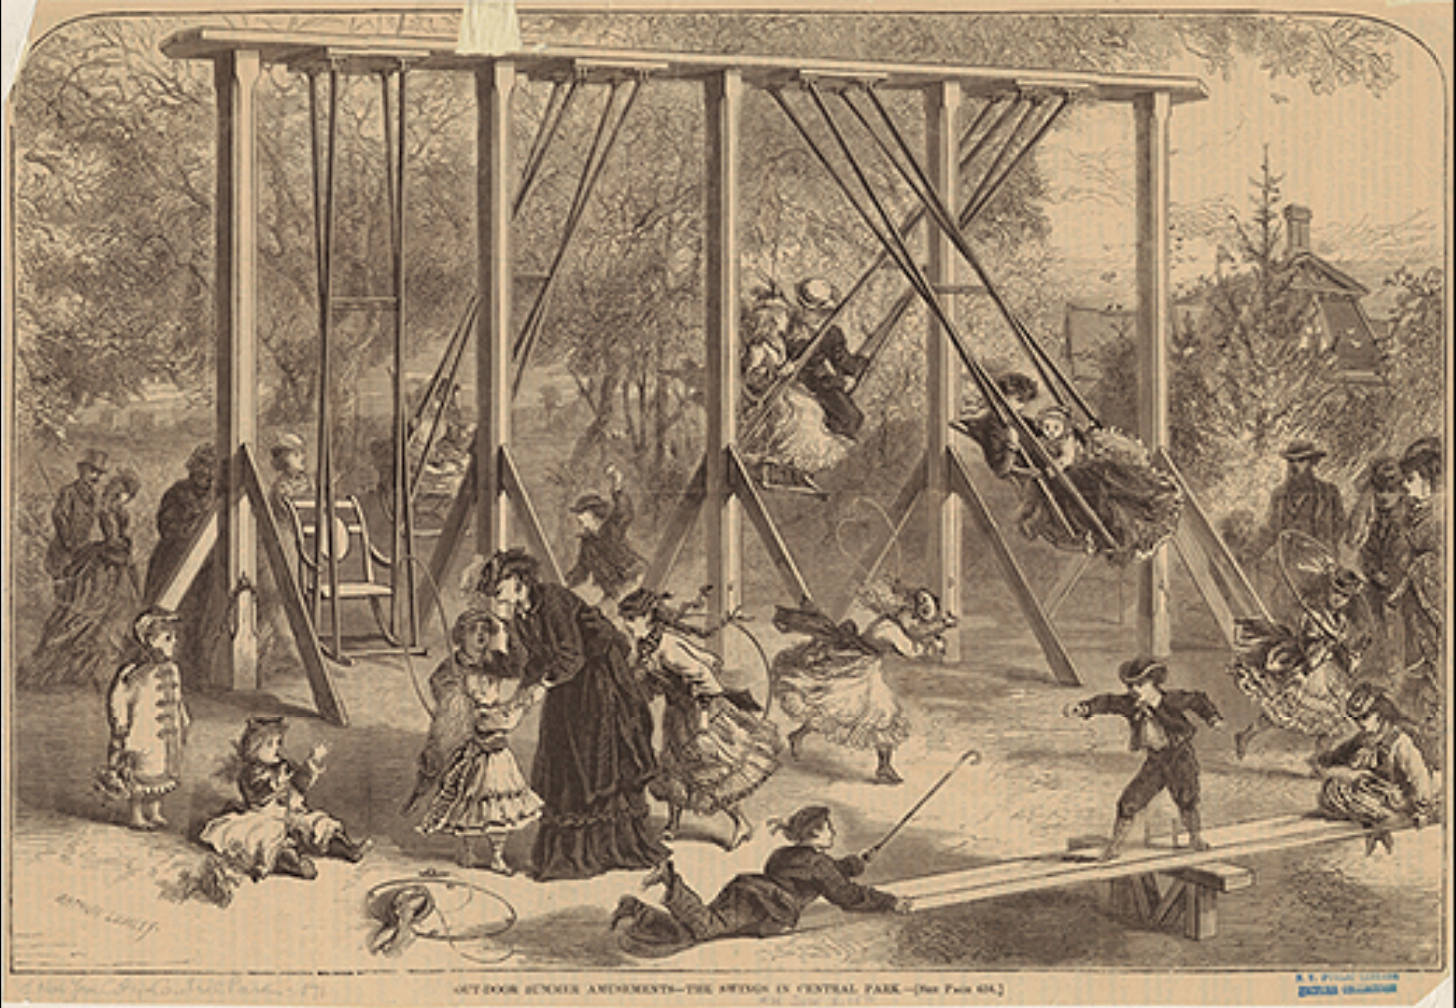 1871-out-door-summer-amusements-the-swings-in-central-park-1871-nypl